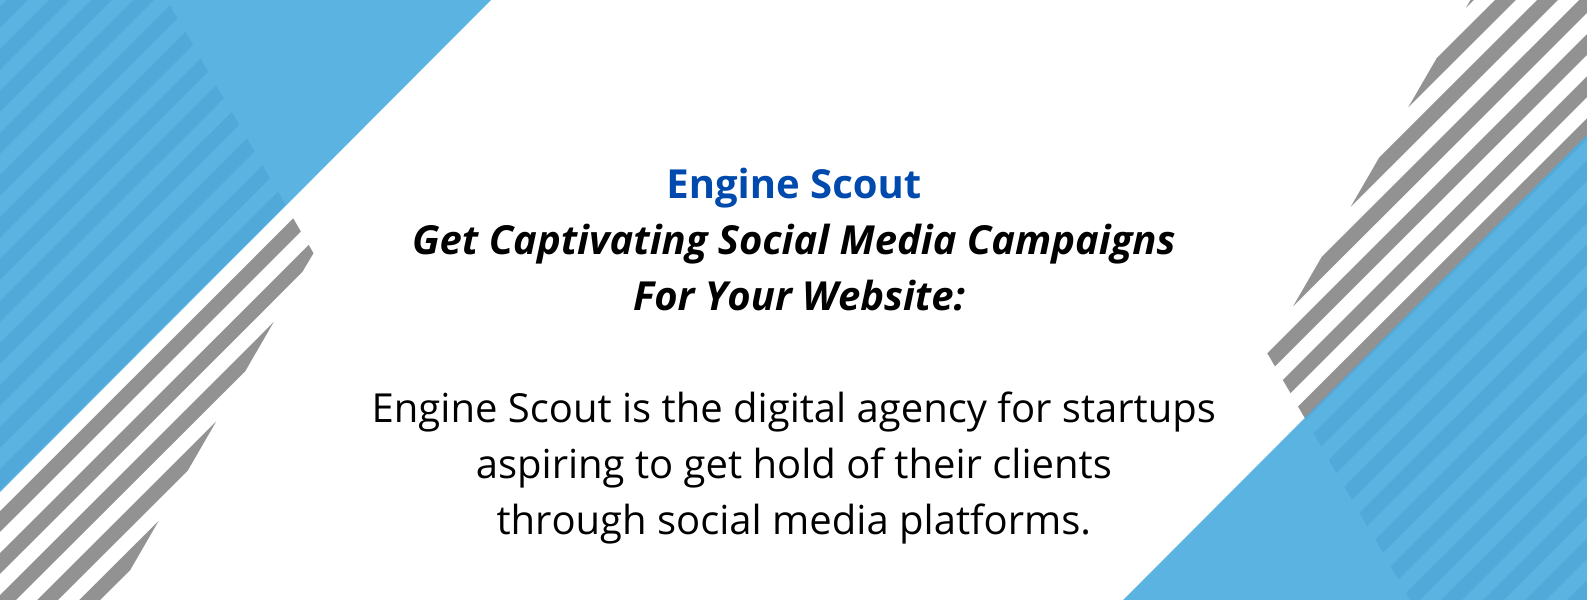 Unique selling proposition of Engine Scout - a digital marketing agency.